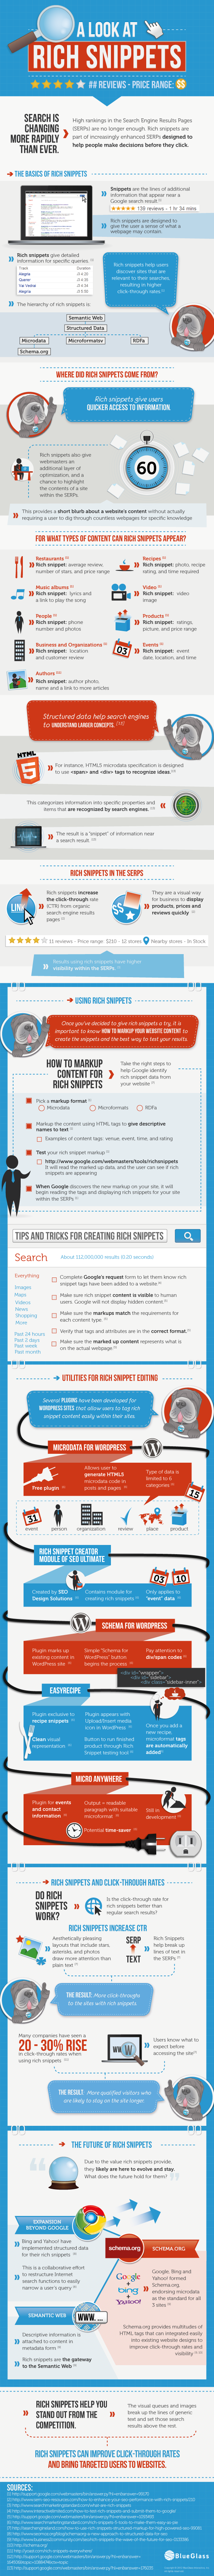 Exploring Rich Snippets: A Visual Guide